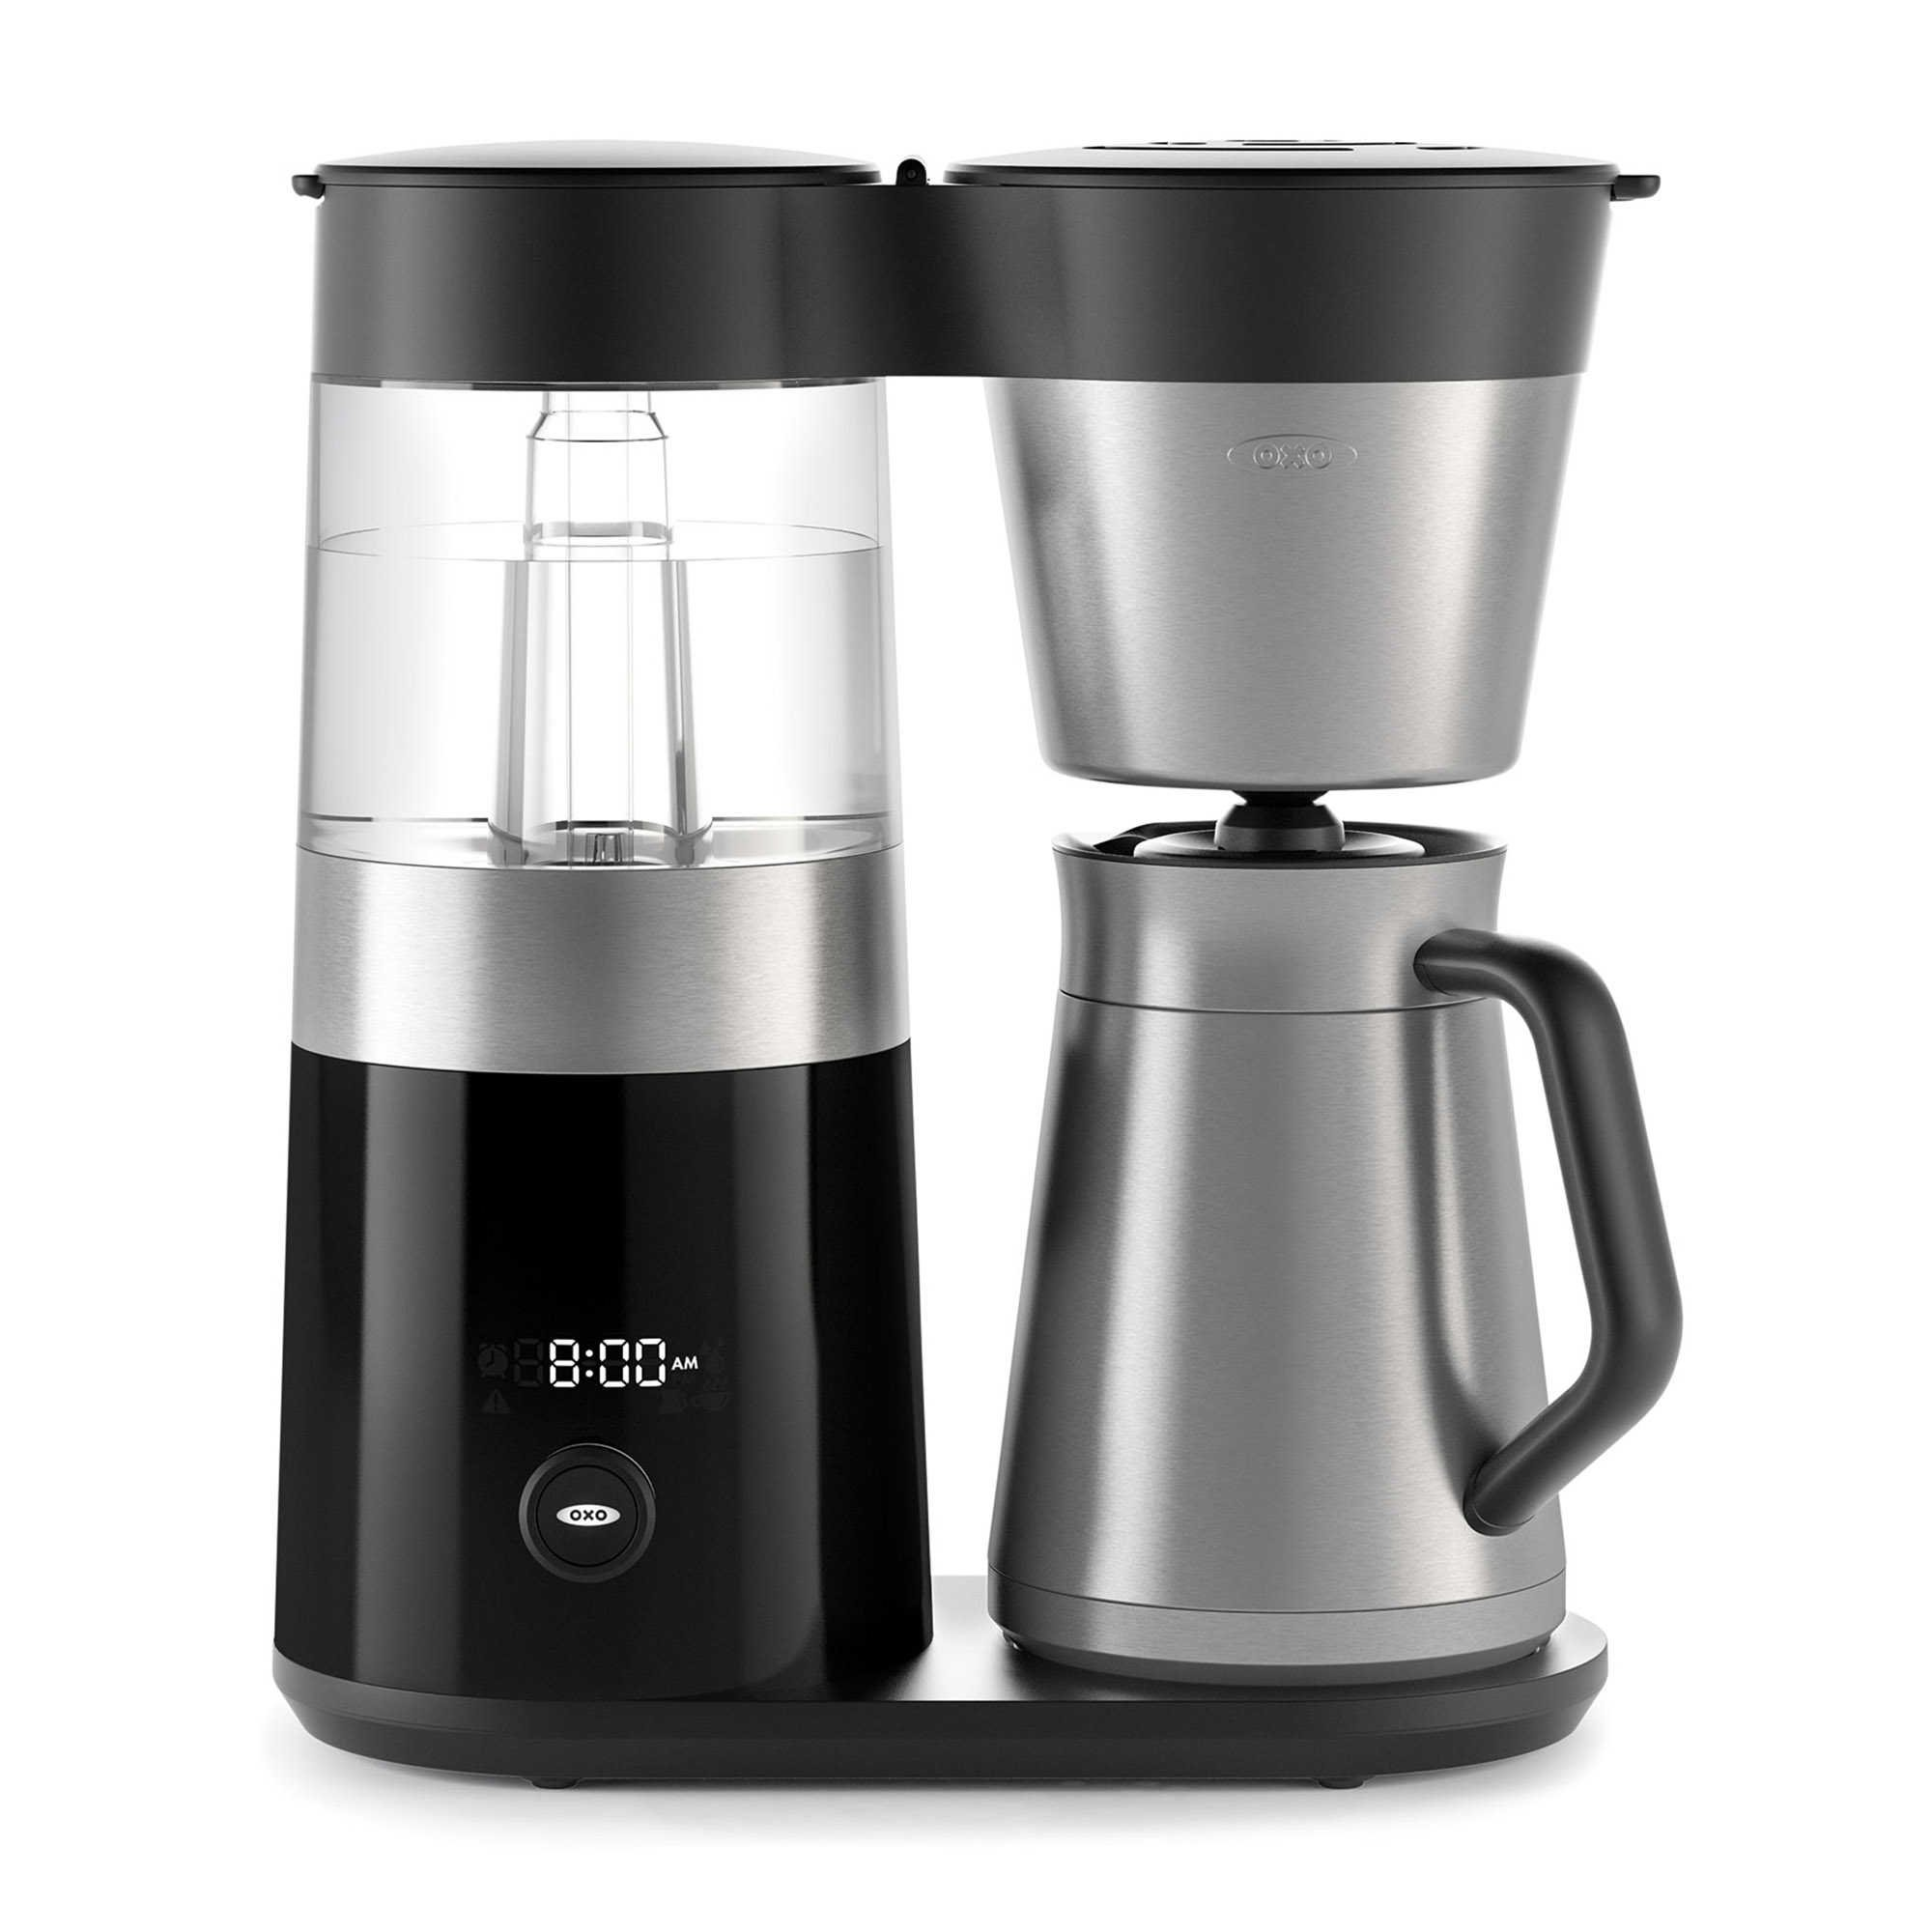 OXO On Barista Brain 9 Cup Coffee Maker (with 100-Count Number 4 Natural Brown Super Premium Coffee Filters and 14 oz. Descaling Solution) by by OXO (Image #4)